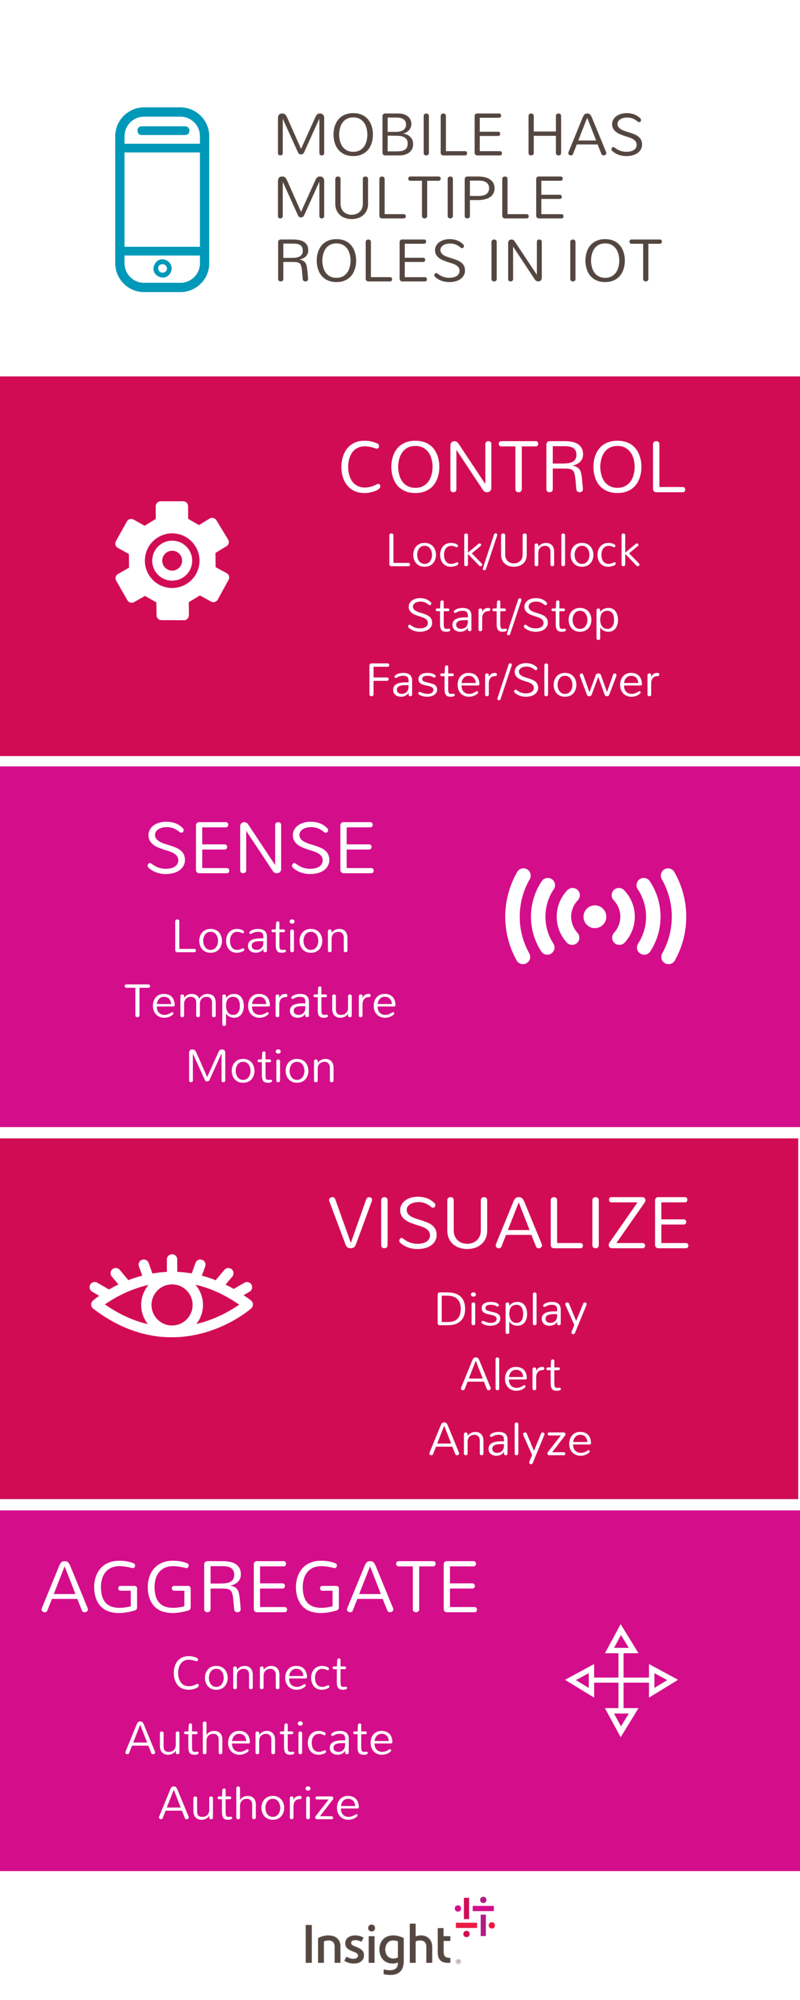 The multiple roles in mobile IOT: Control, Sense, Visualize and Aggregate